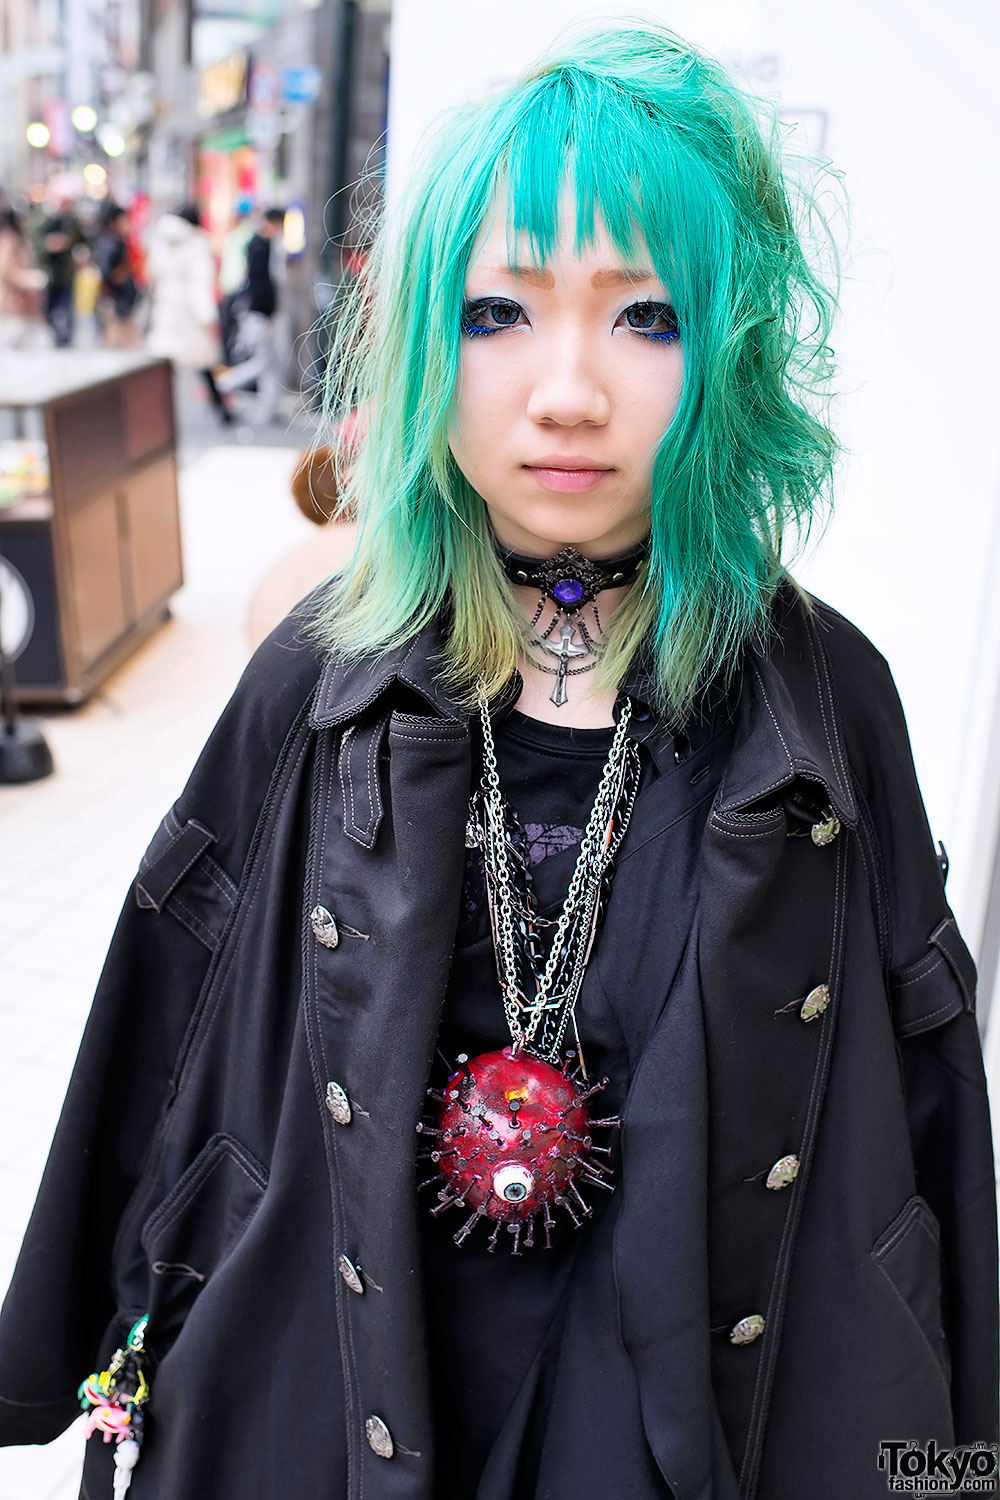 Boy London Eyeball Necklace Amp Aqua Hair In Harajuku